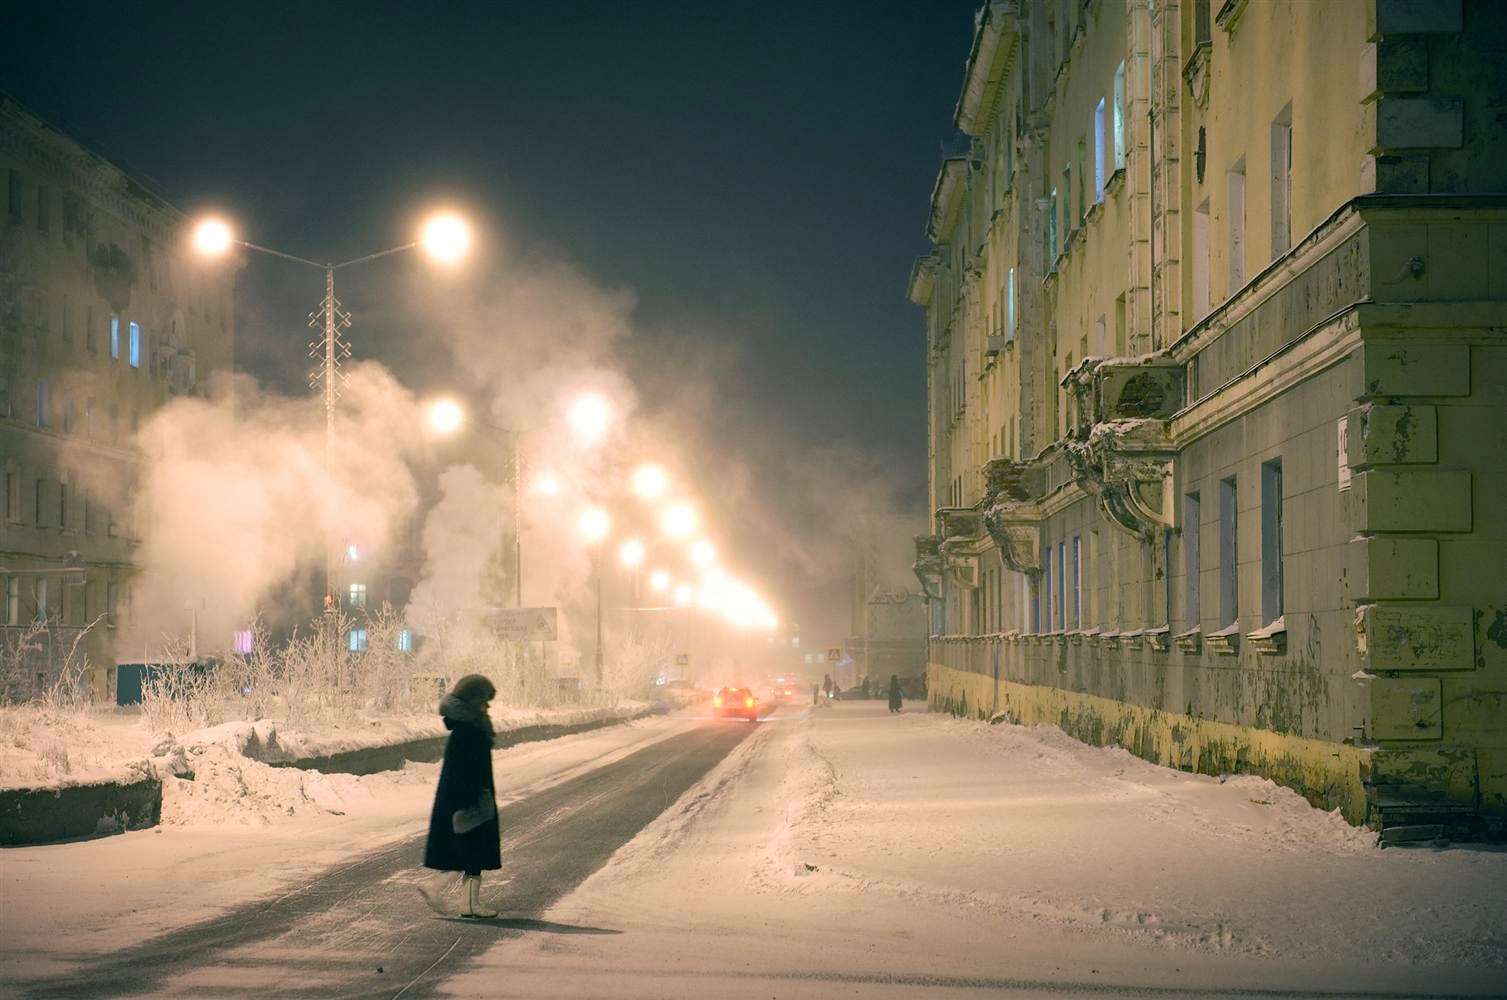 One of the coldest cities in the world, Norilsk has an average yearly temperature of 15 degrees Fahrenheit